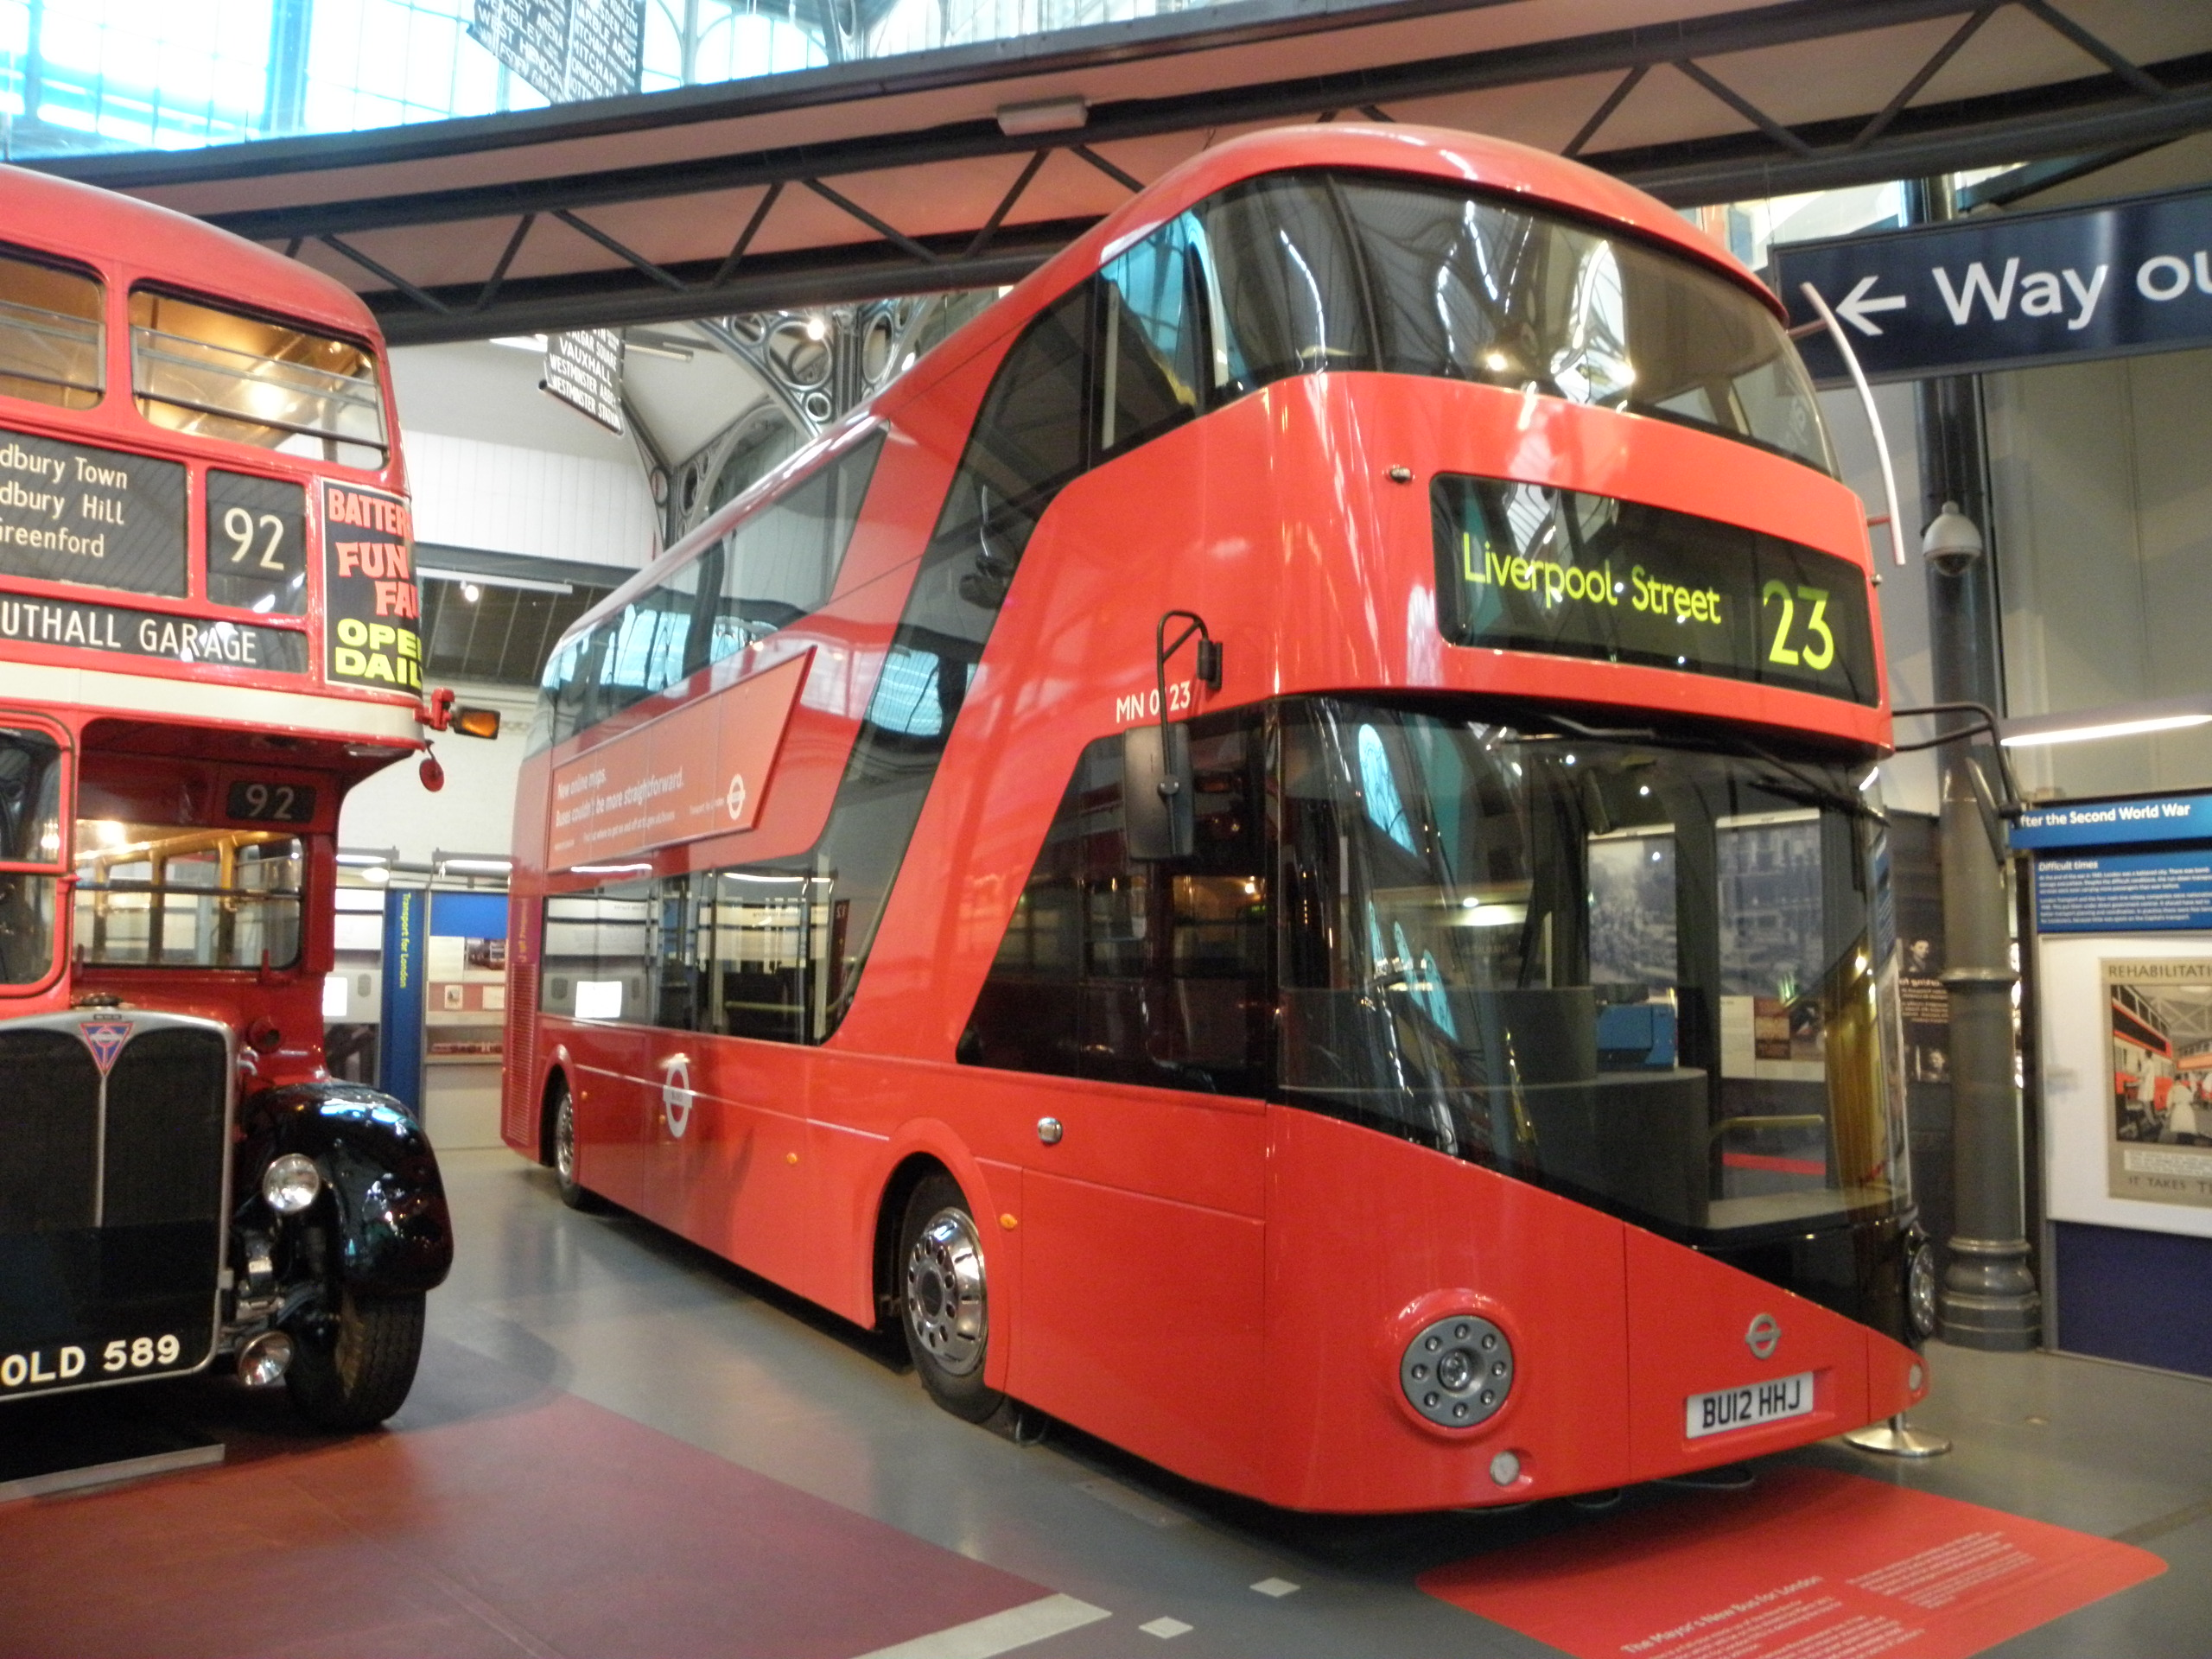 File:Boris Bus at London Transport Museum.jpg - Wikimedia Commons